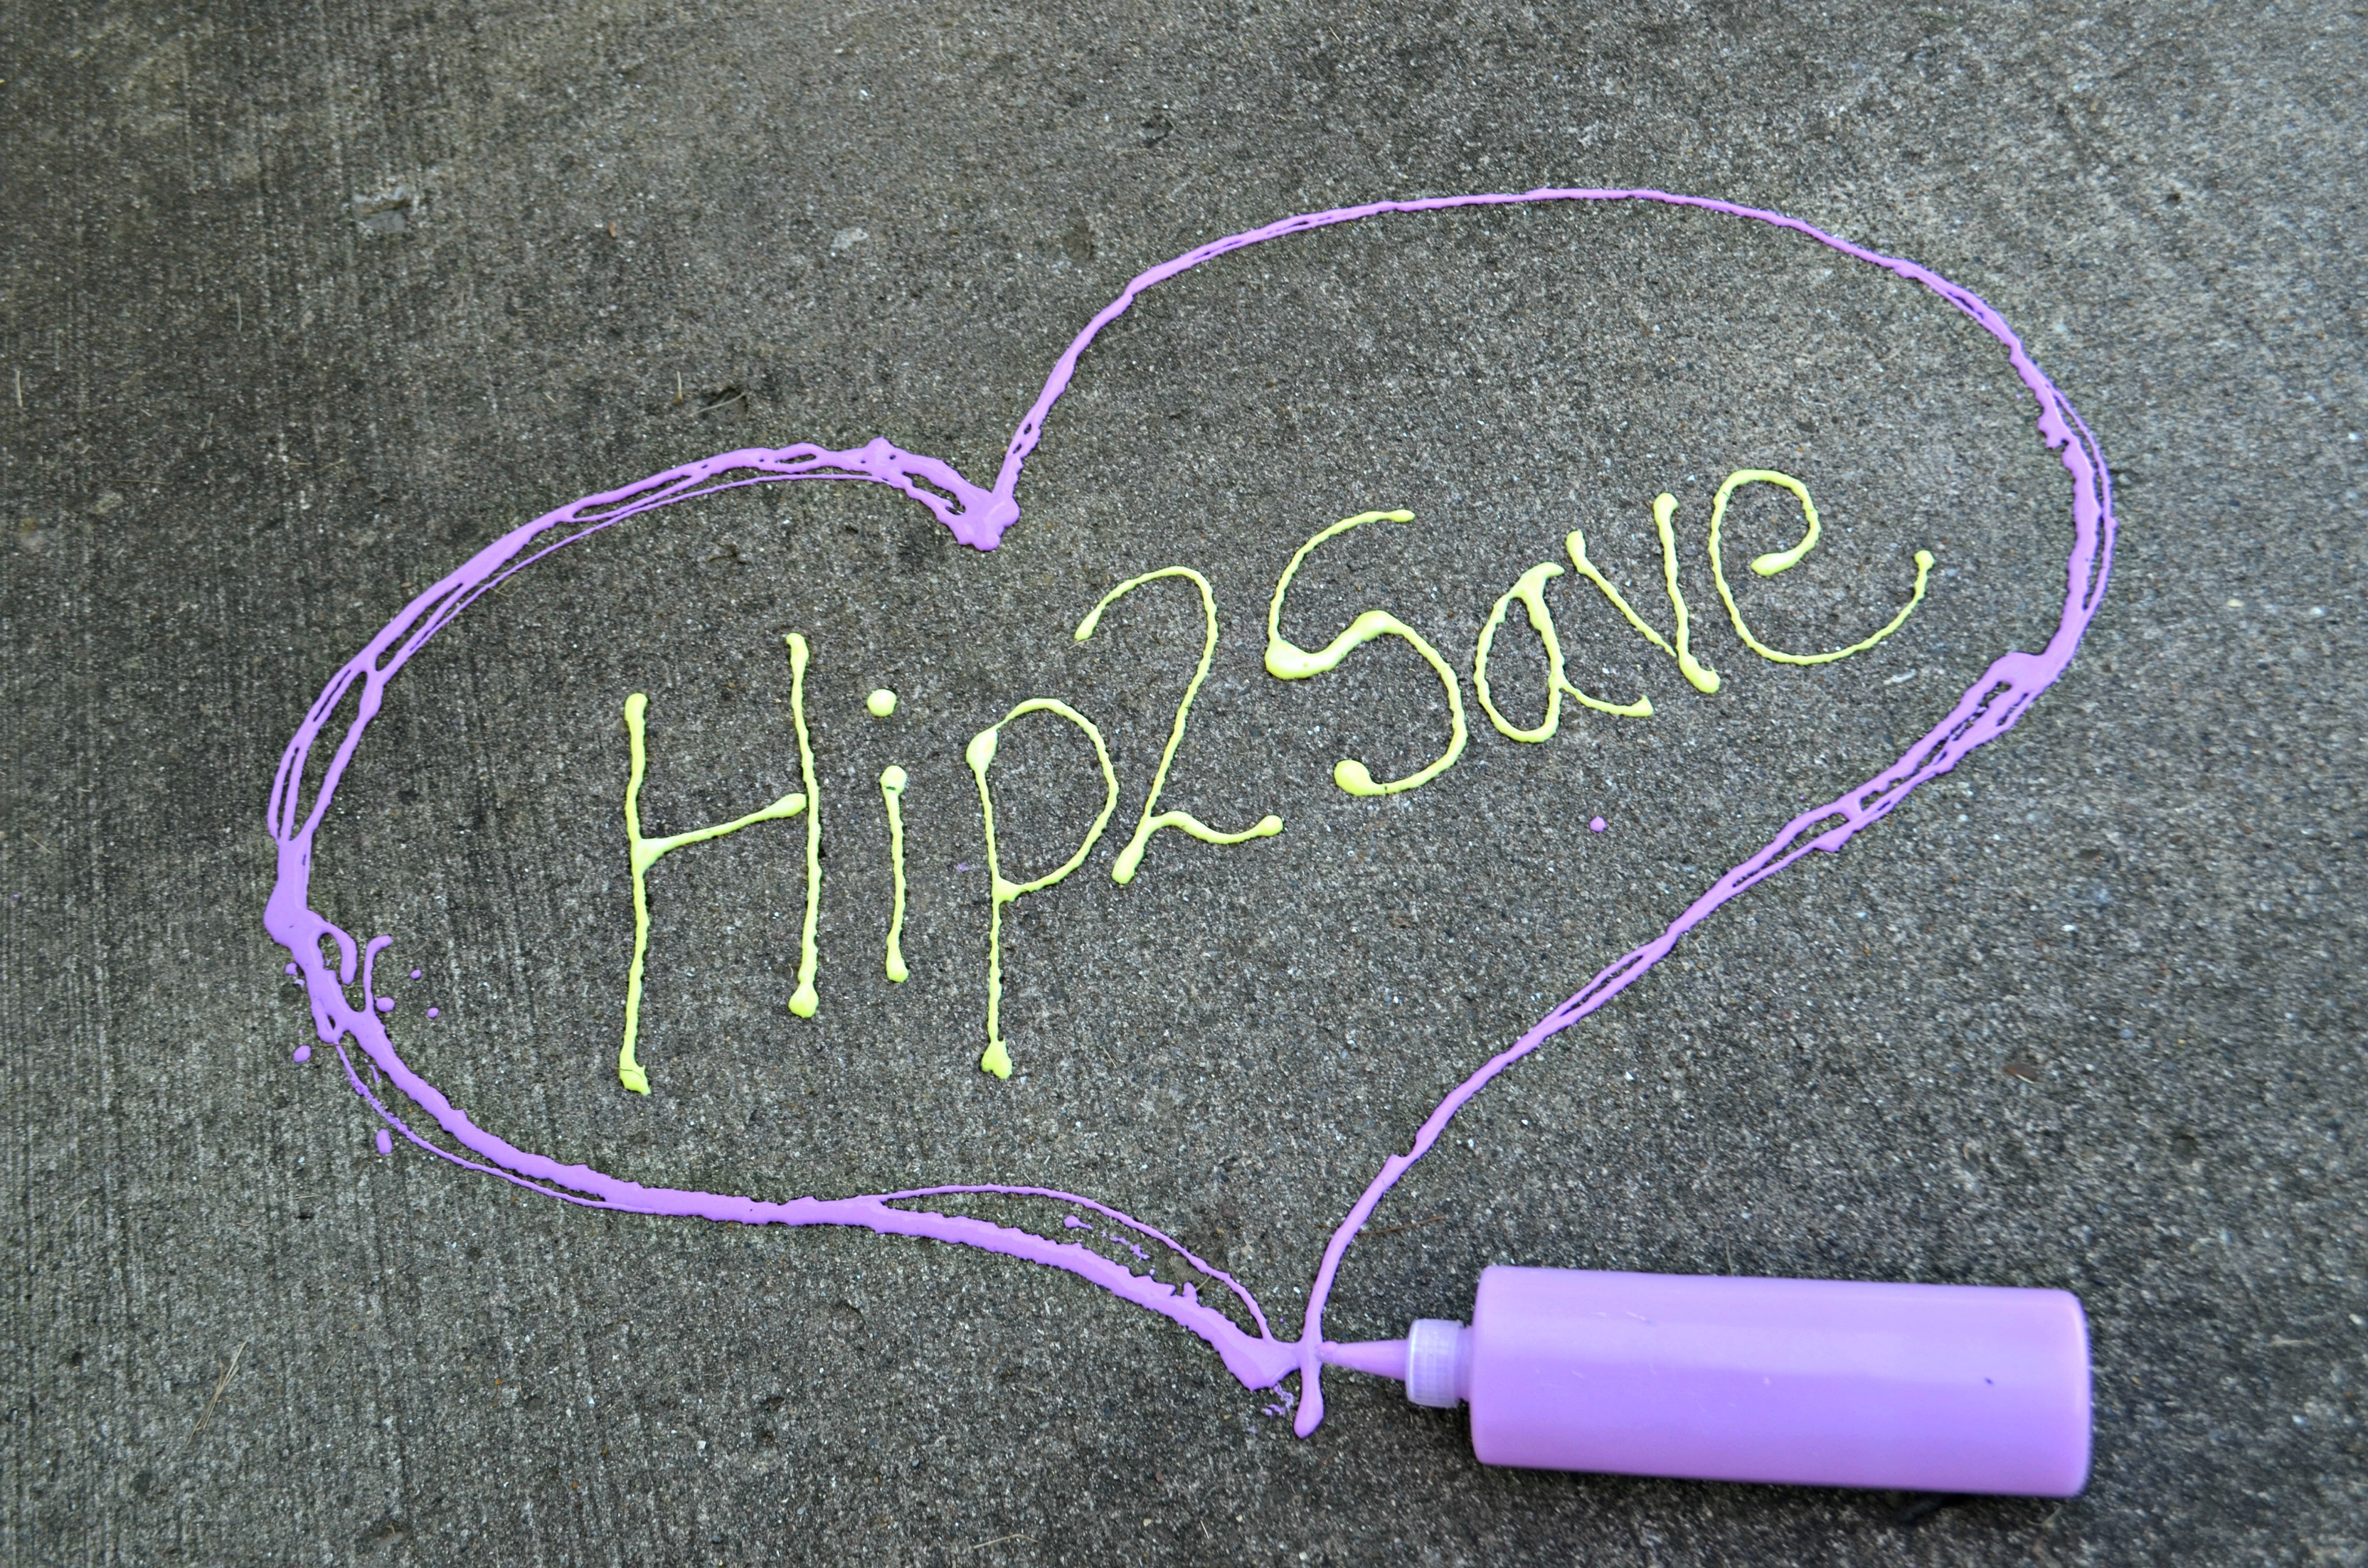 """3 Ingredient DIY Puffy Sidewalk Paint - A heart with """"Hip2Save"""" written inside in puffy paint"""